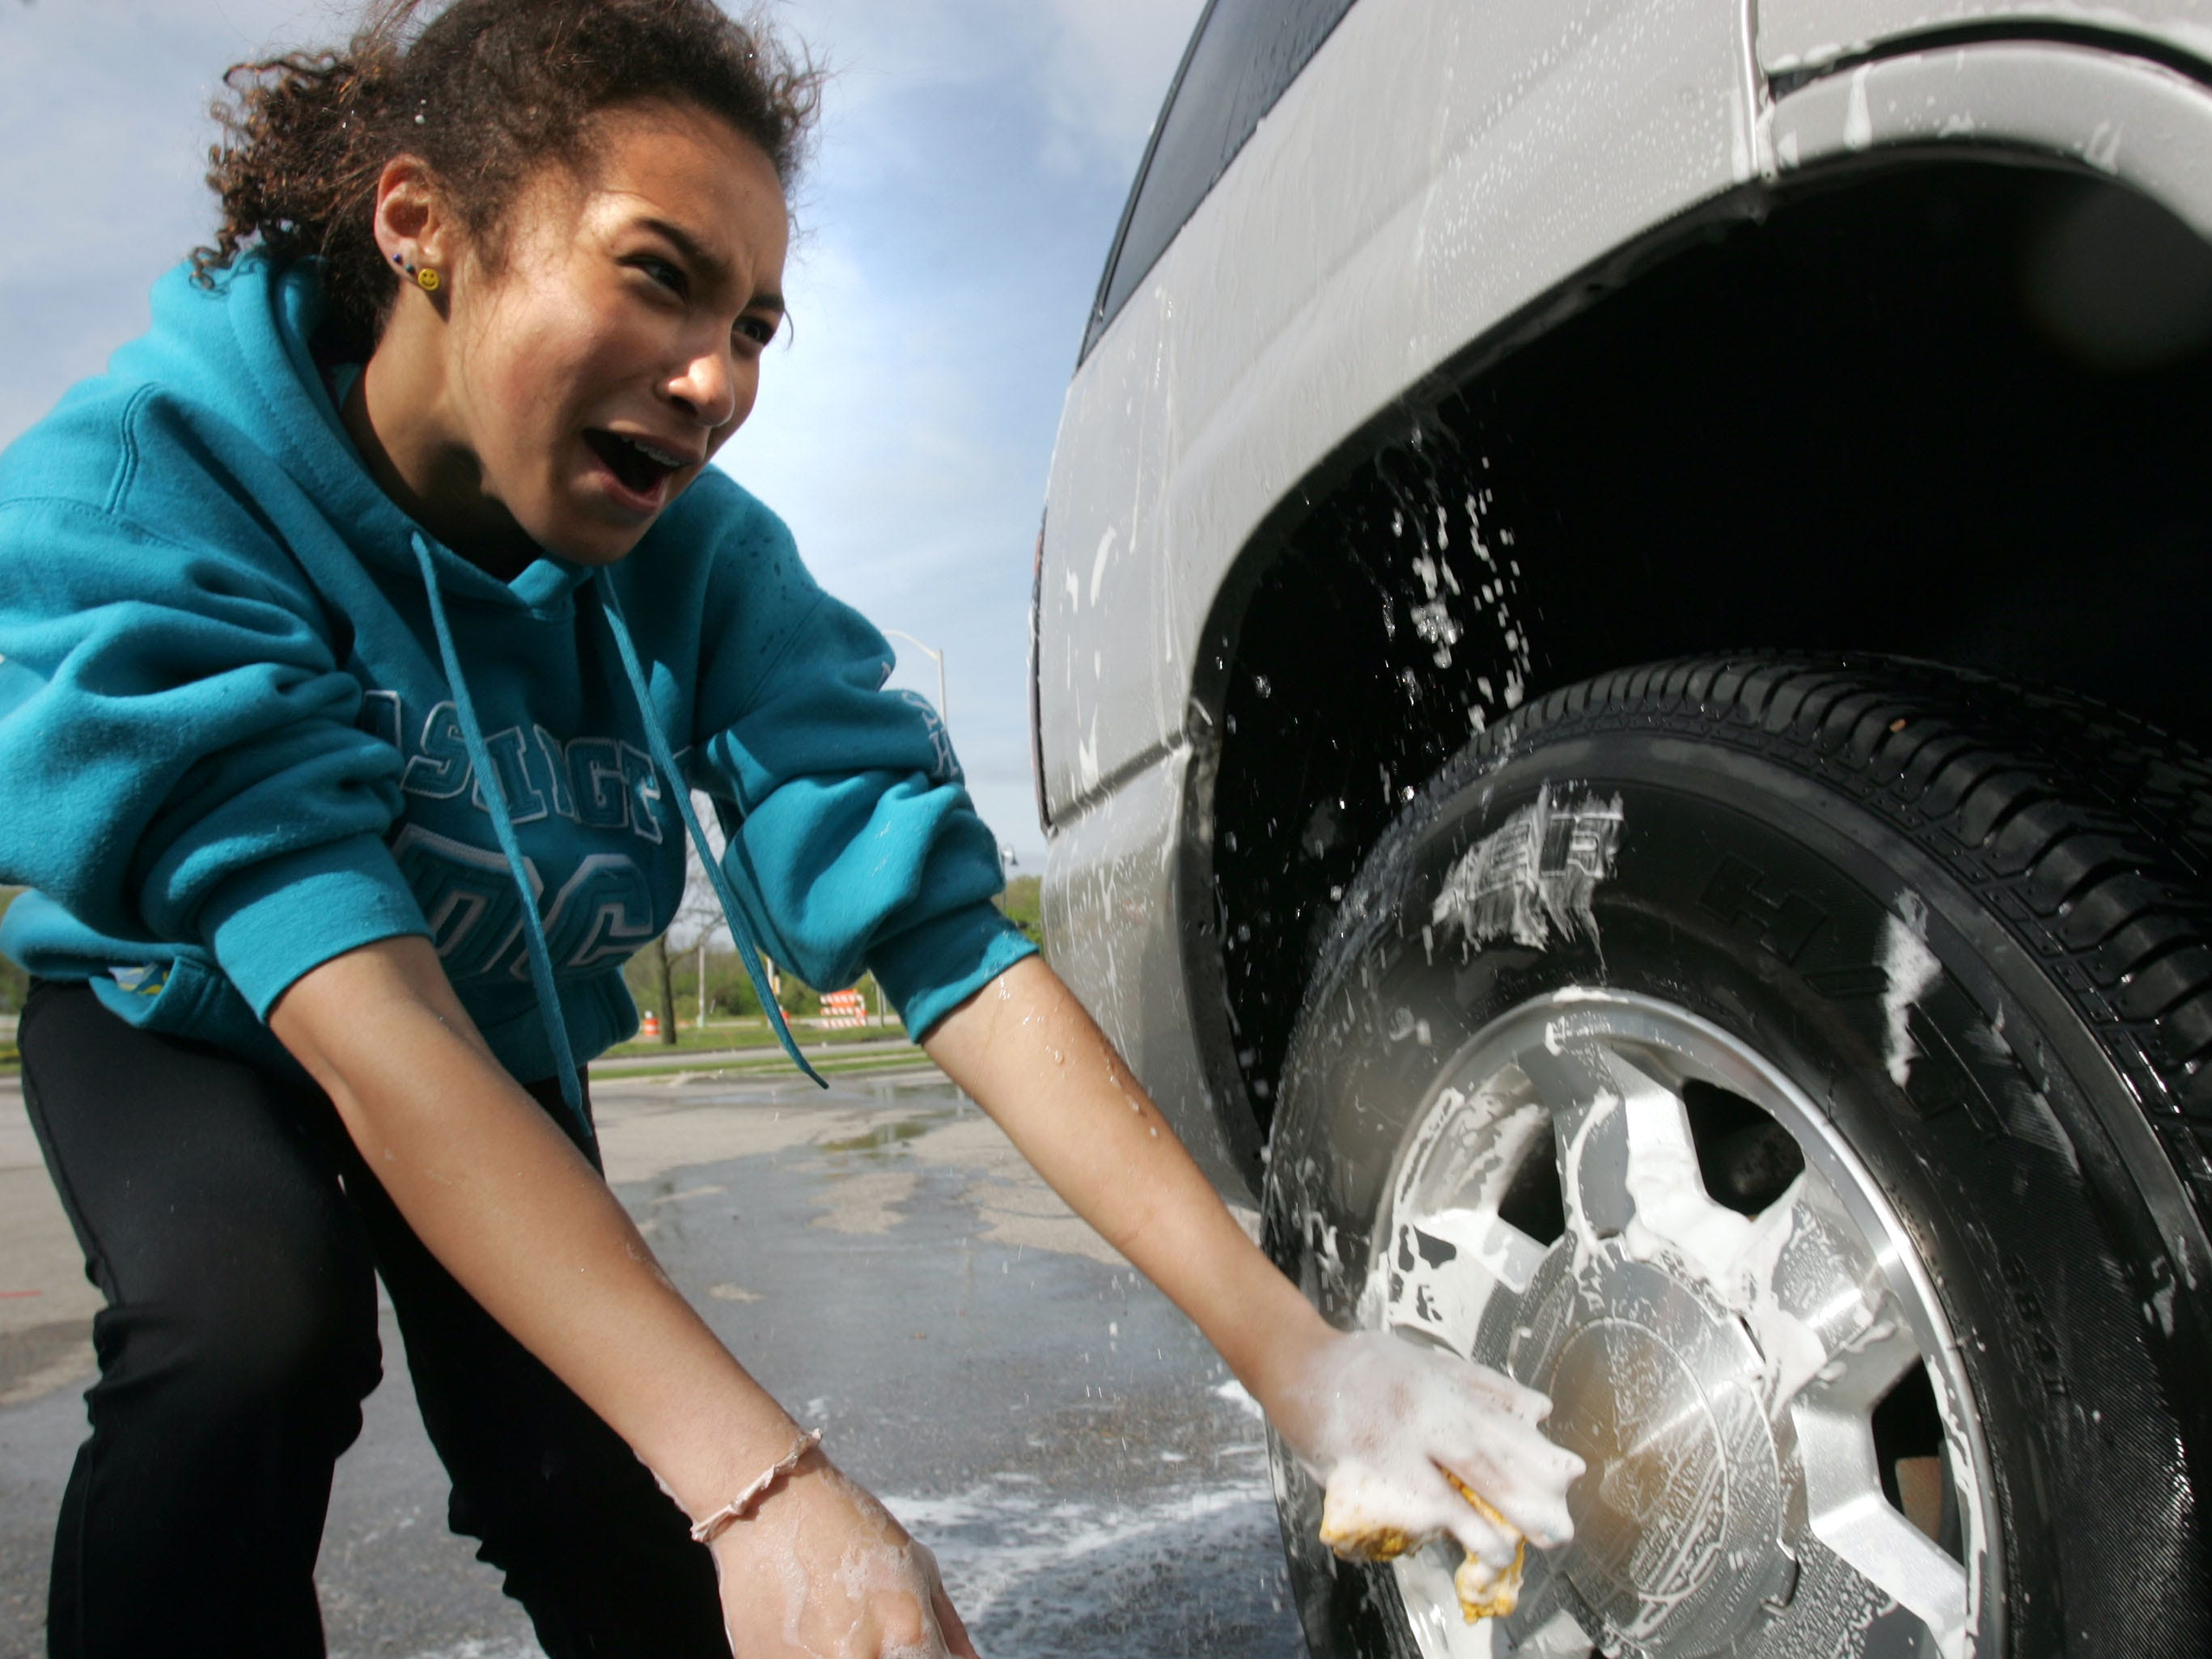 Peri Sem, 14, reacts as she is inadvertently sprayed with water while washing a car in the parking lot of a Speedway gas station May 16, 2009, in Greendale. Peri was taking part in a fundraiser to raise money for a student trip to China with the People to People Student Ambassador program.